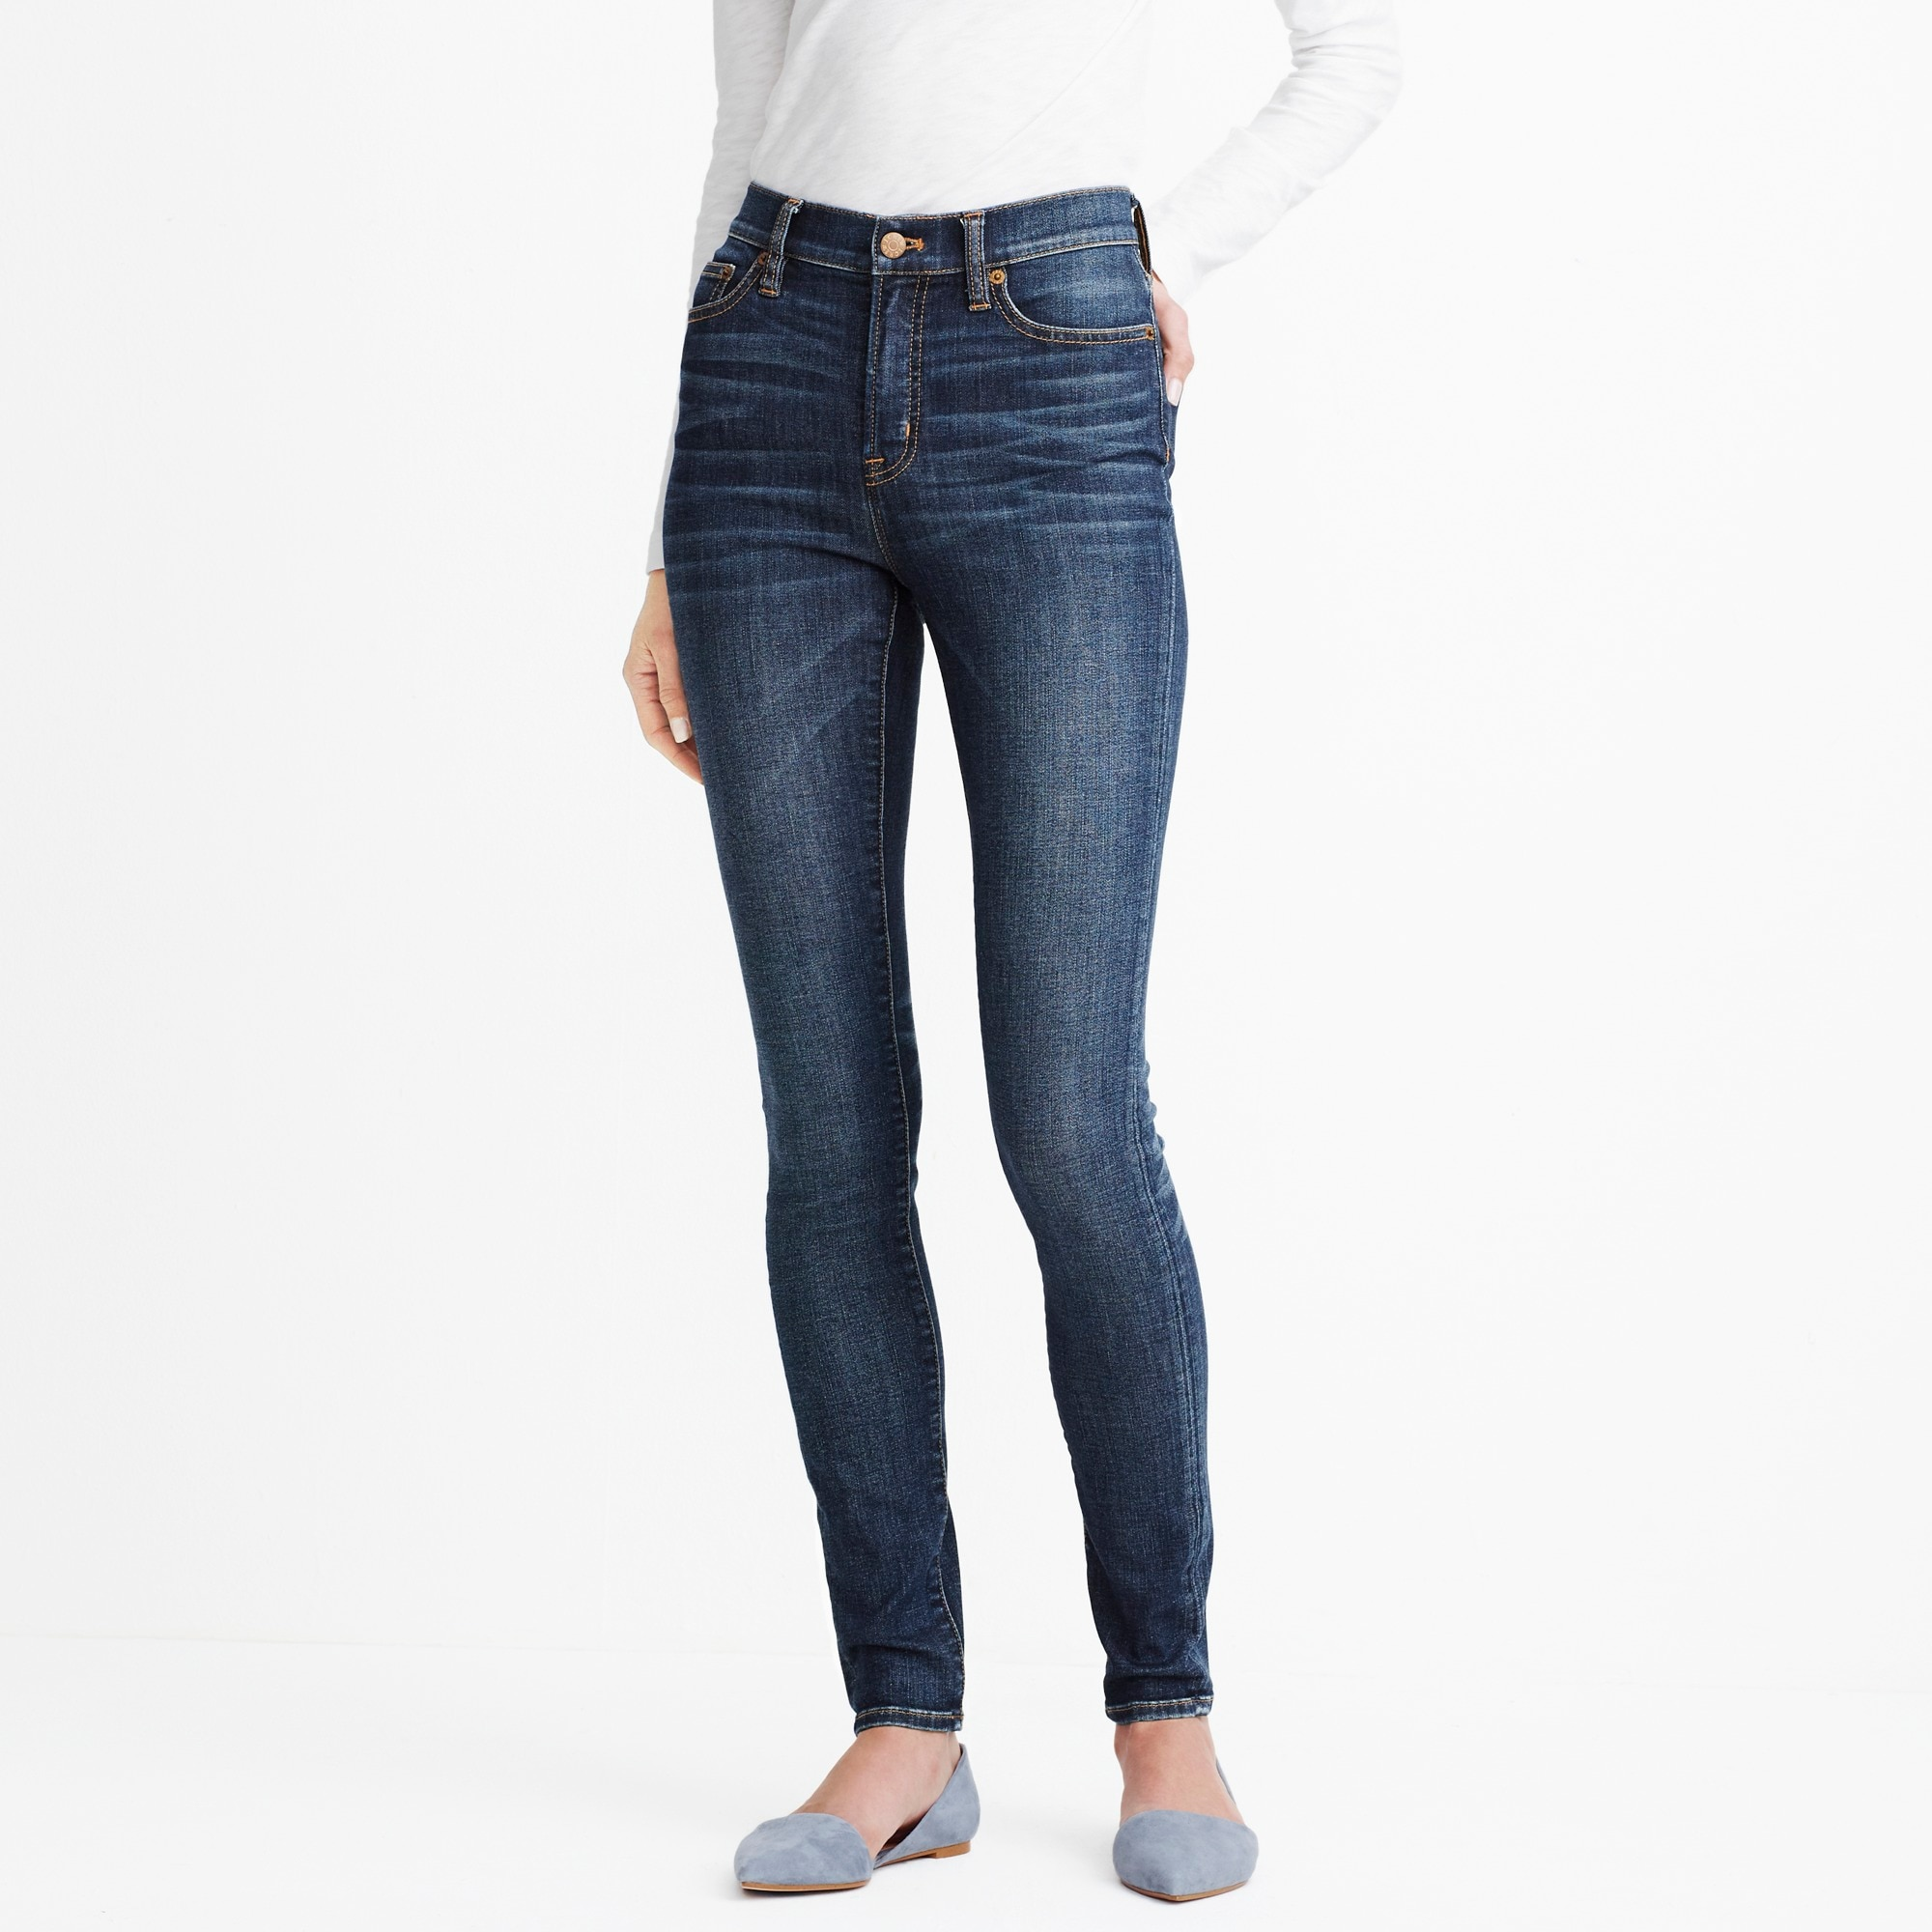 "Classic blue wash high-rise skinny jean with 29"" inseam factorywomen sizes 18-20 c"